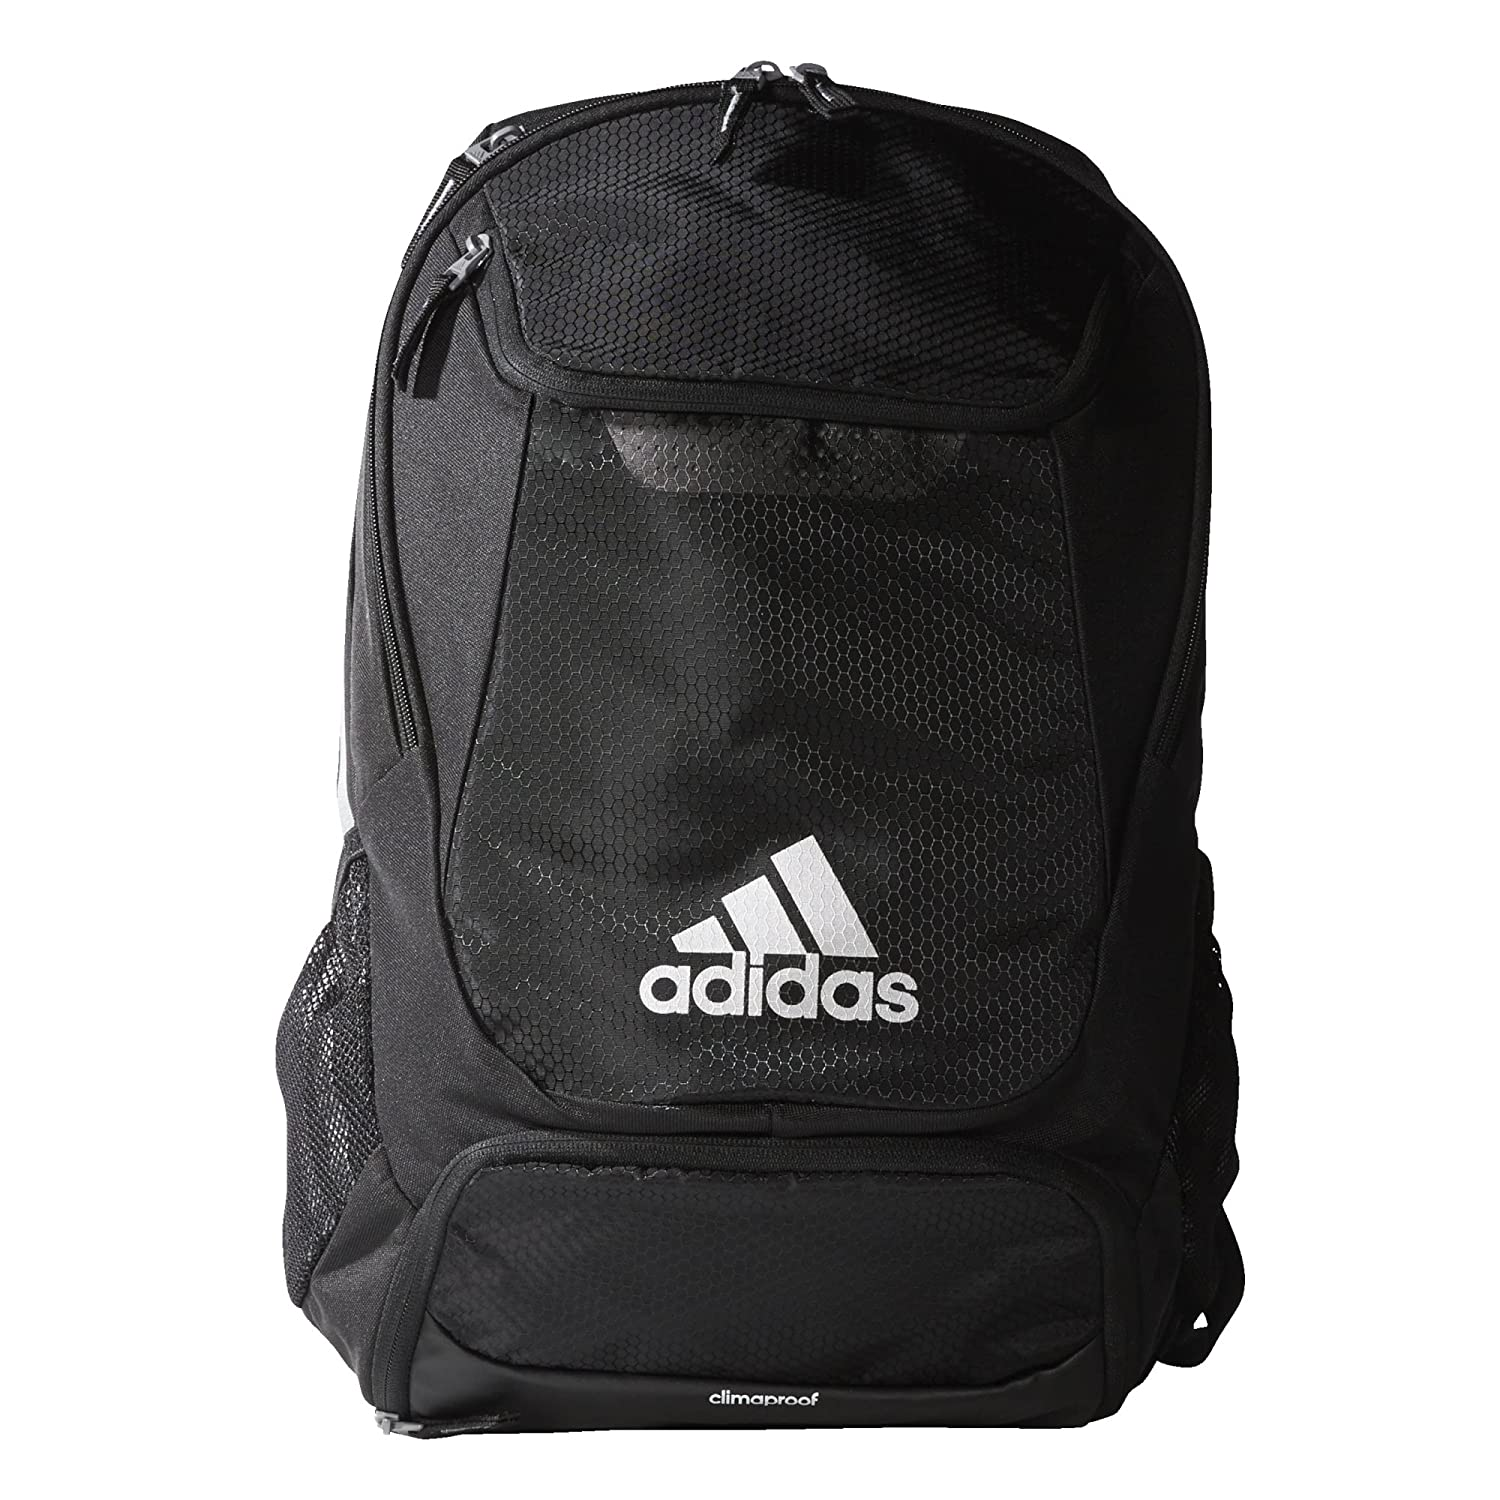 adidas loadspring backpack